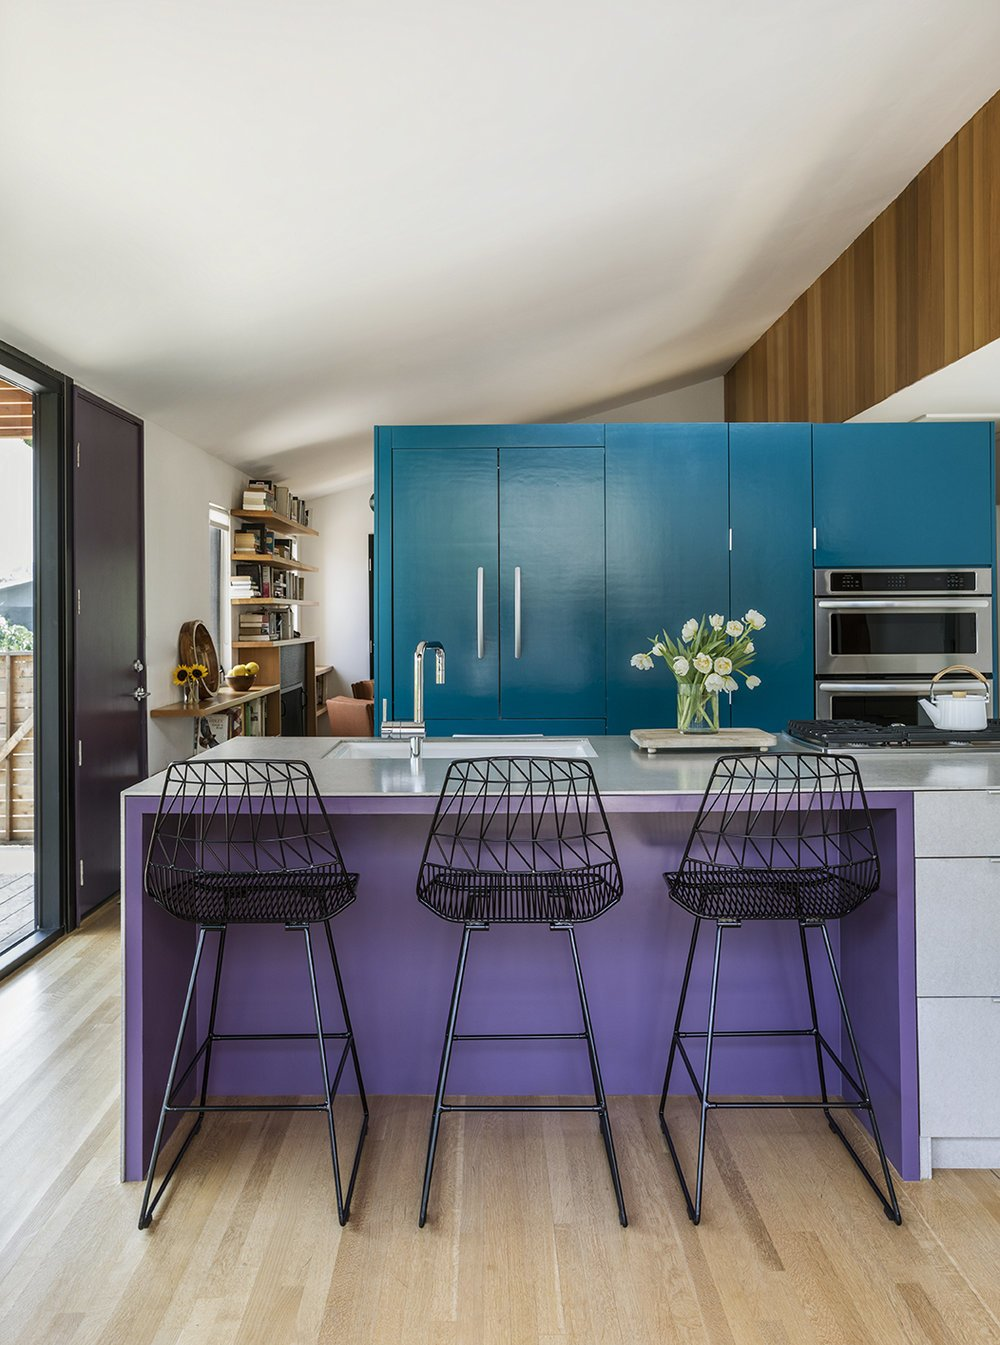 Garden House by Design, Bitches teal and purple kitchen